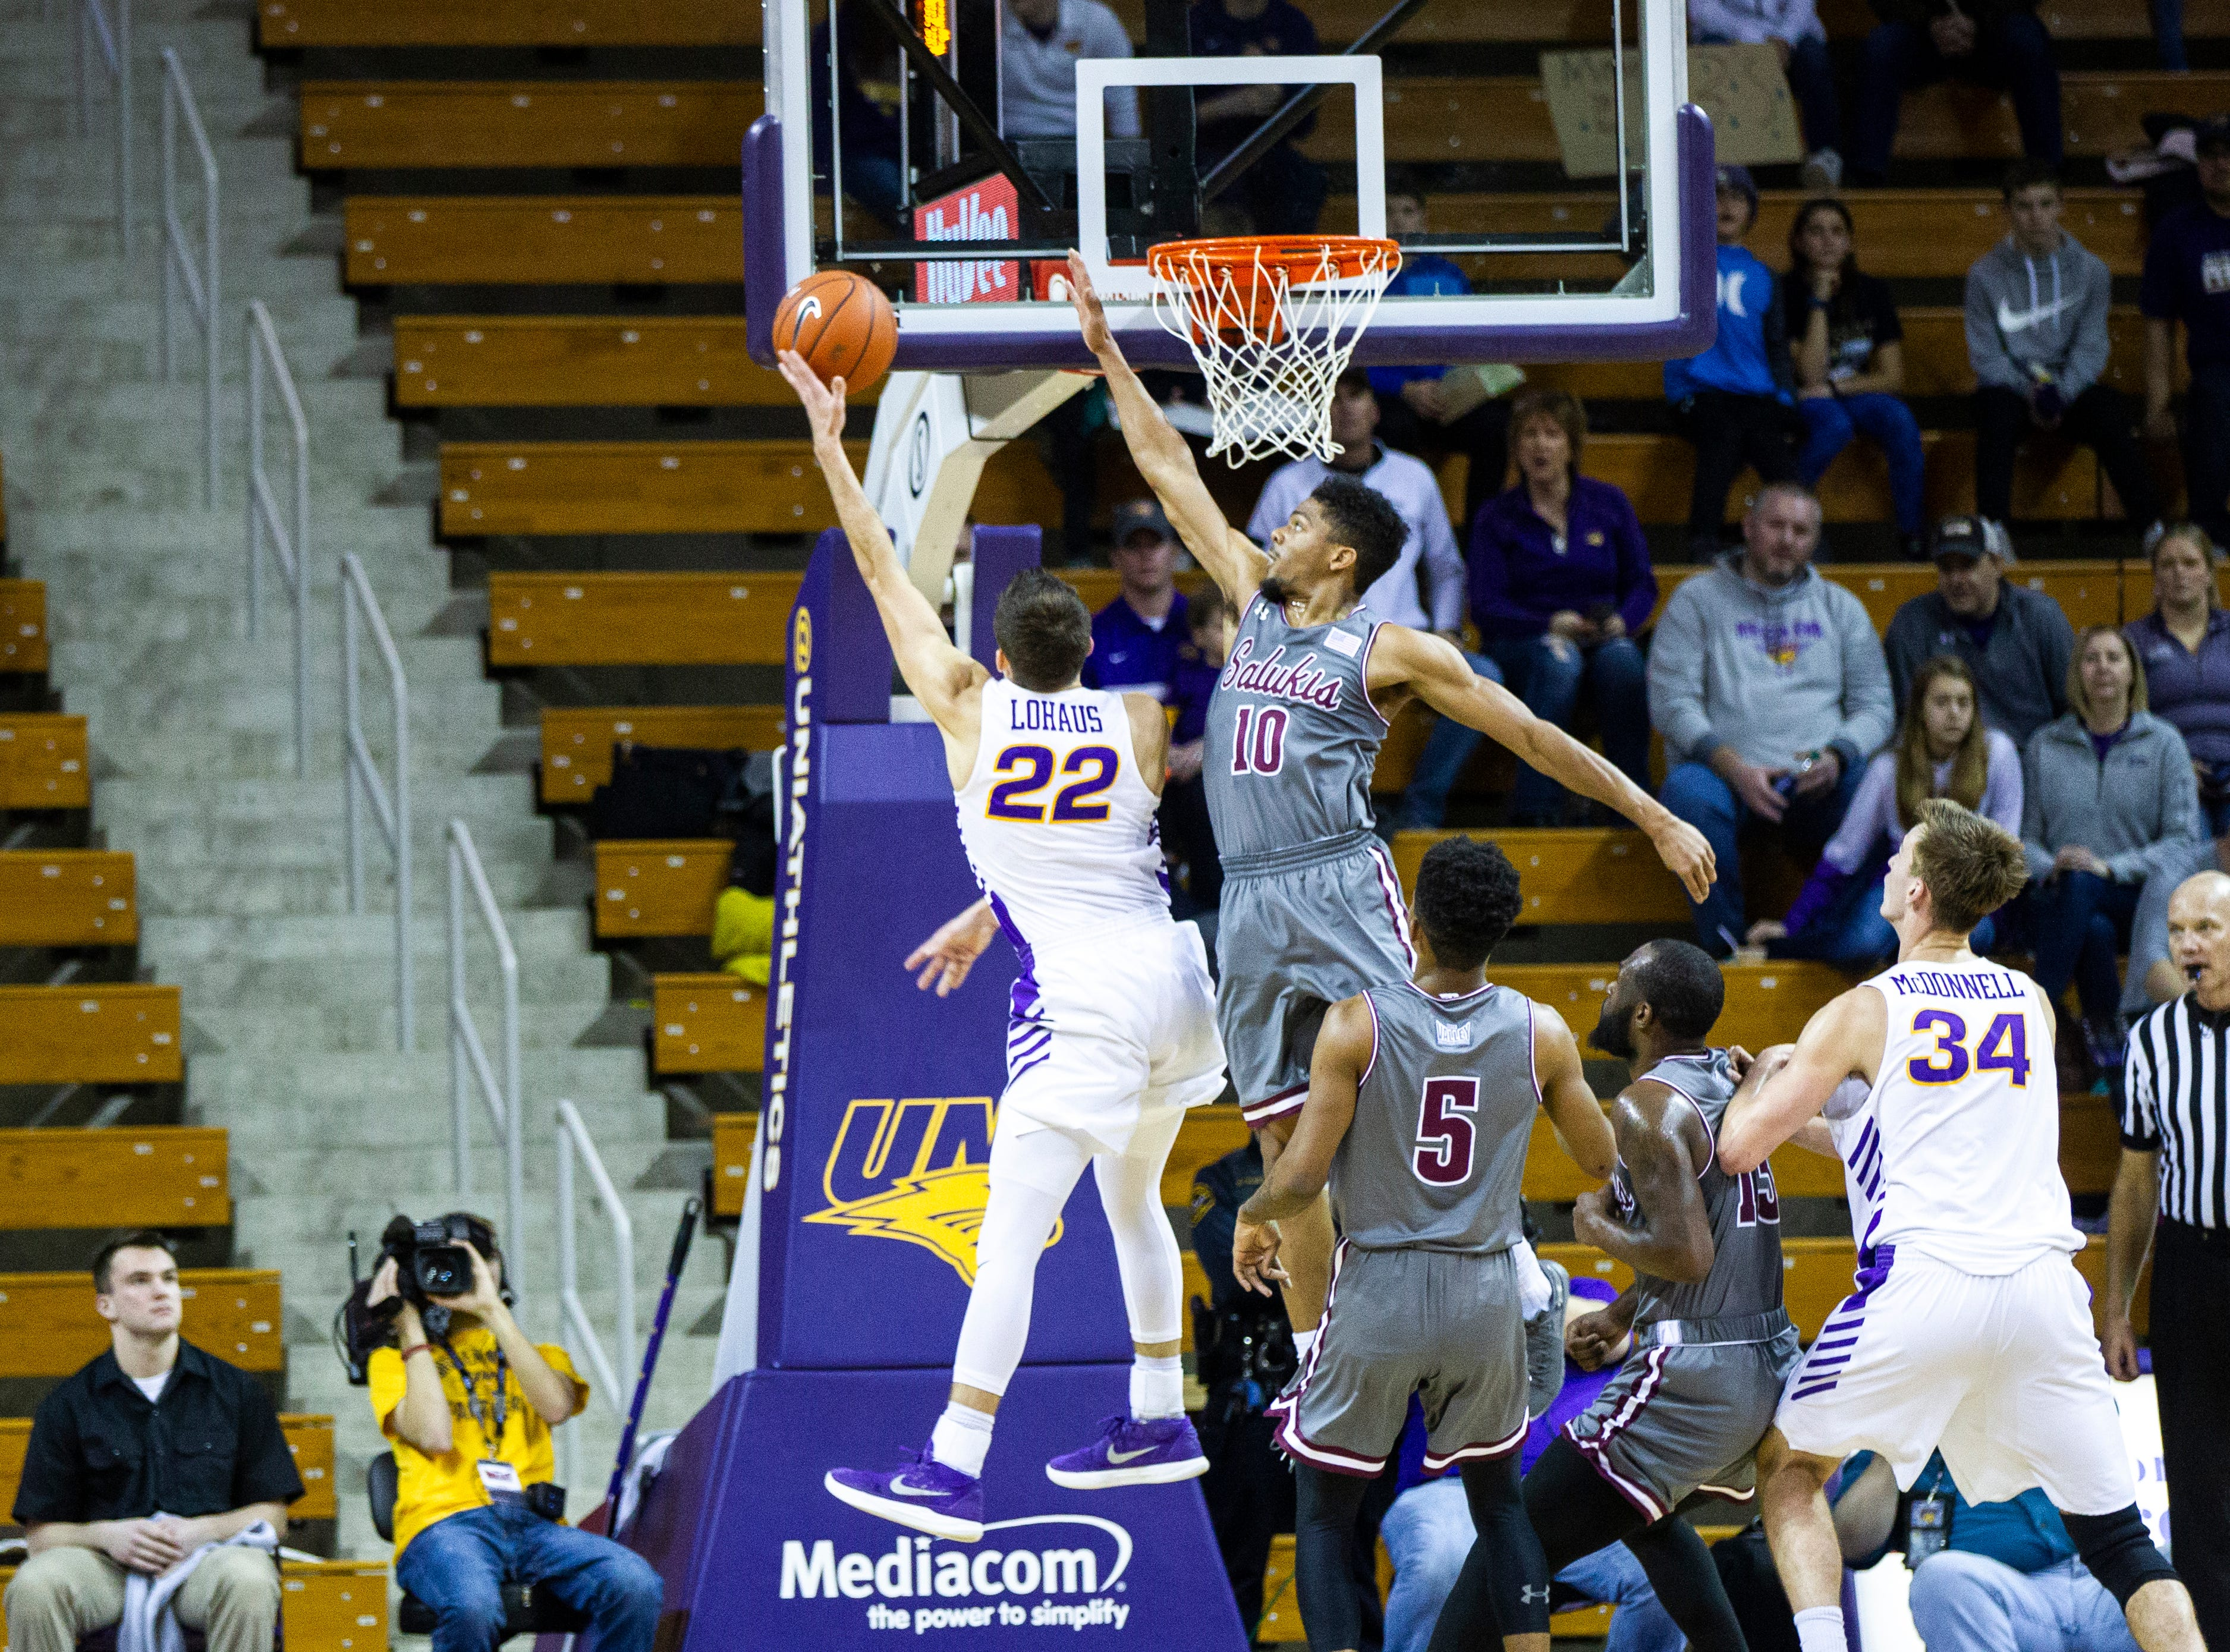 Northern Iowa guard Wyatt Lohaus (22) attempts a layup past Southern Illinois guard Aaron Cook (10) at the end of the first half during a NCAA Missouri Valley Conference men's basketball game on Saturday, Jan. 5, 2019, at the McLeod Center in Cedar Falls, Iowa.